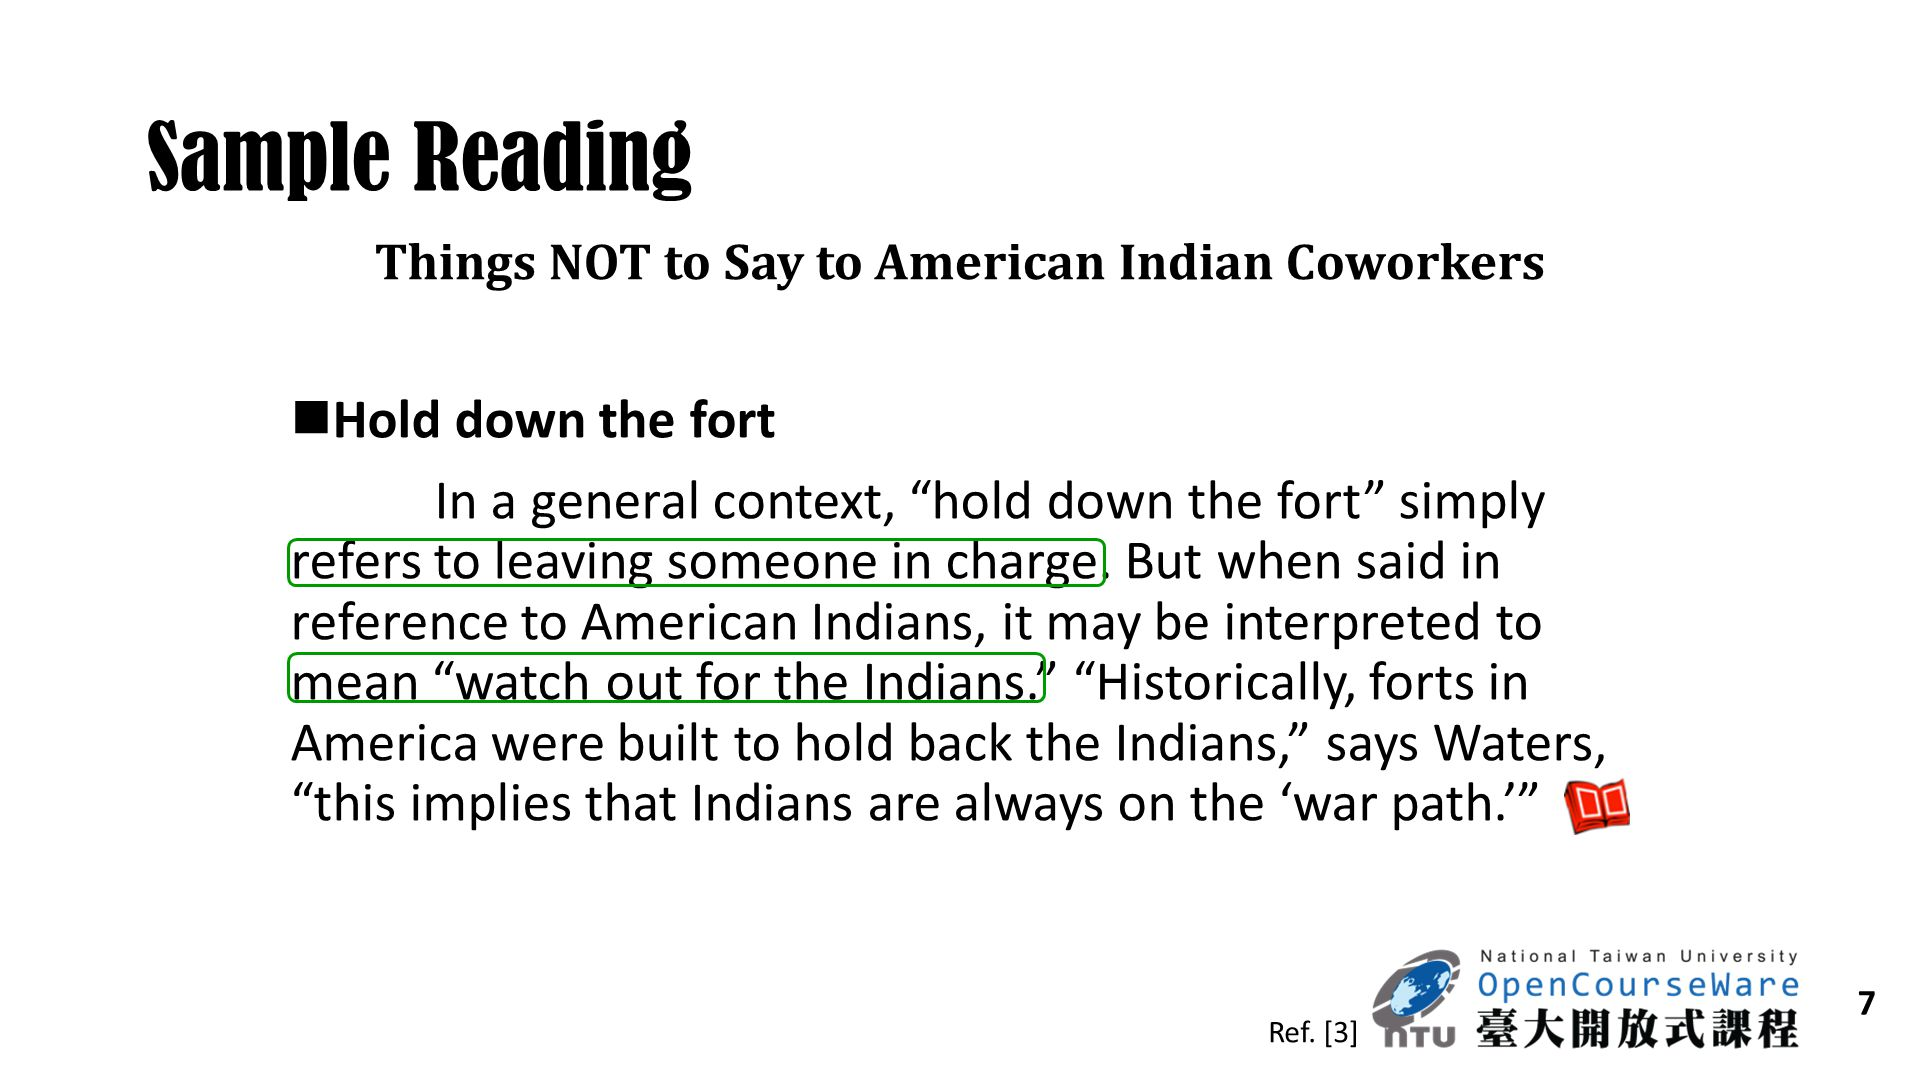 Things NOT to Say to American Indian Coworkers